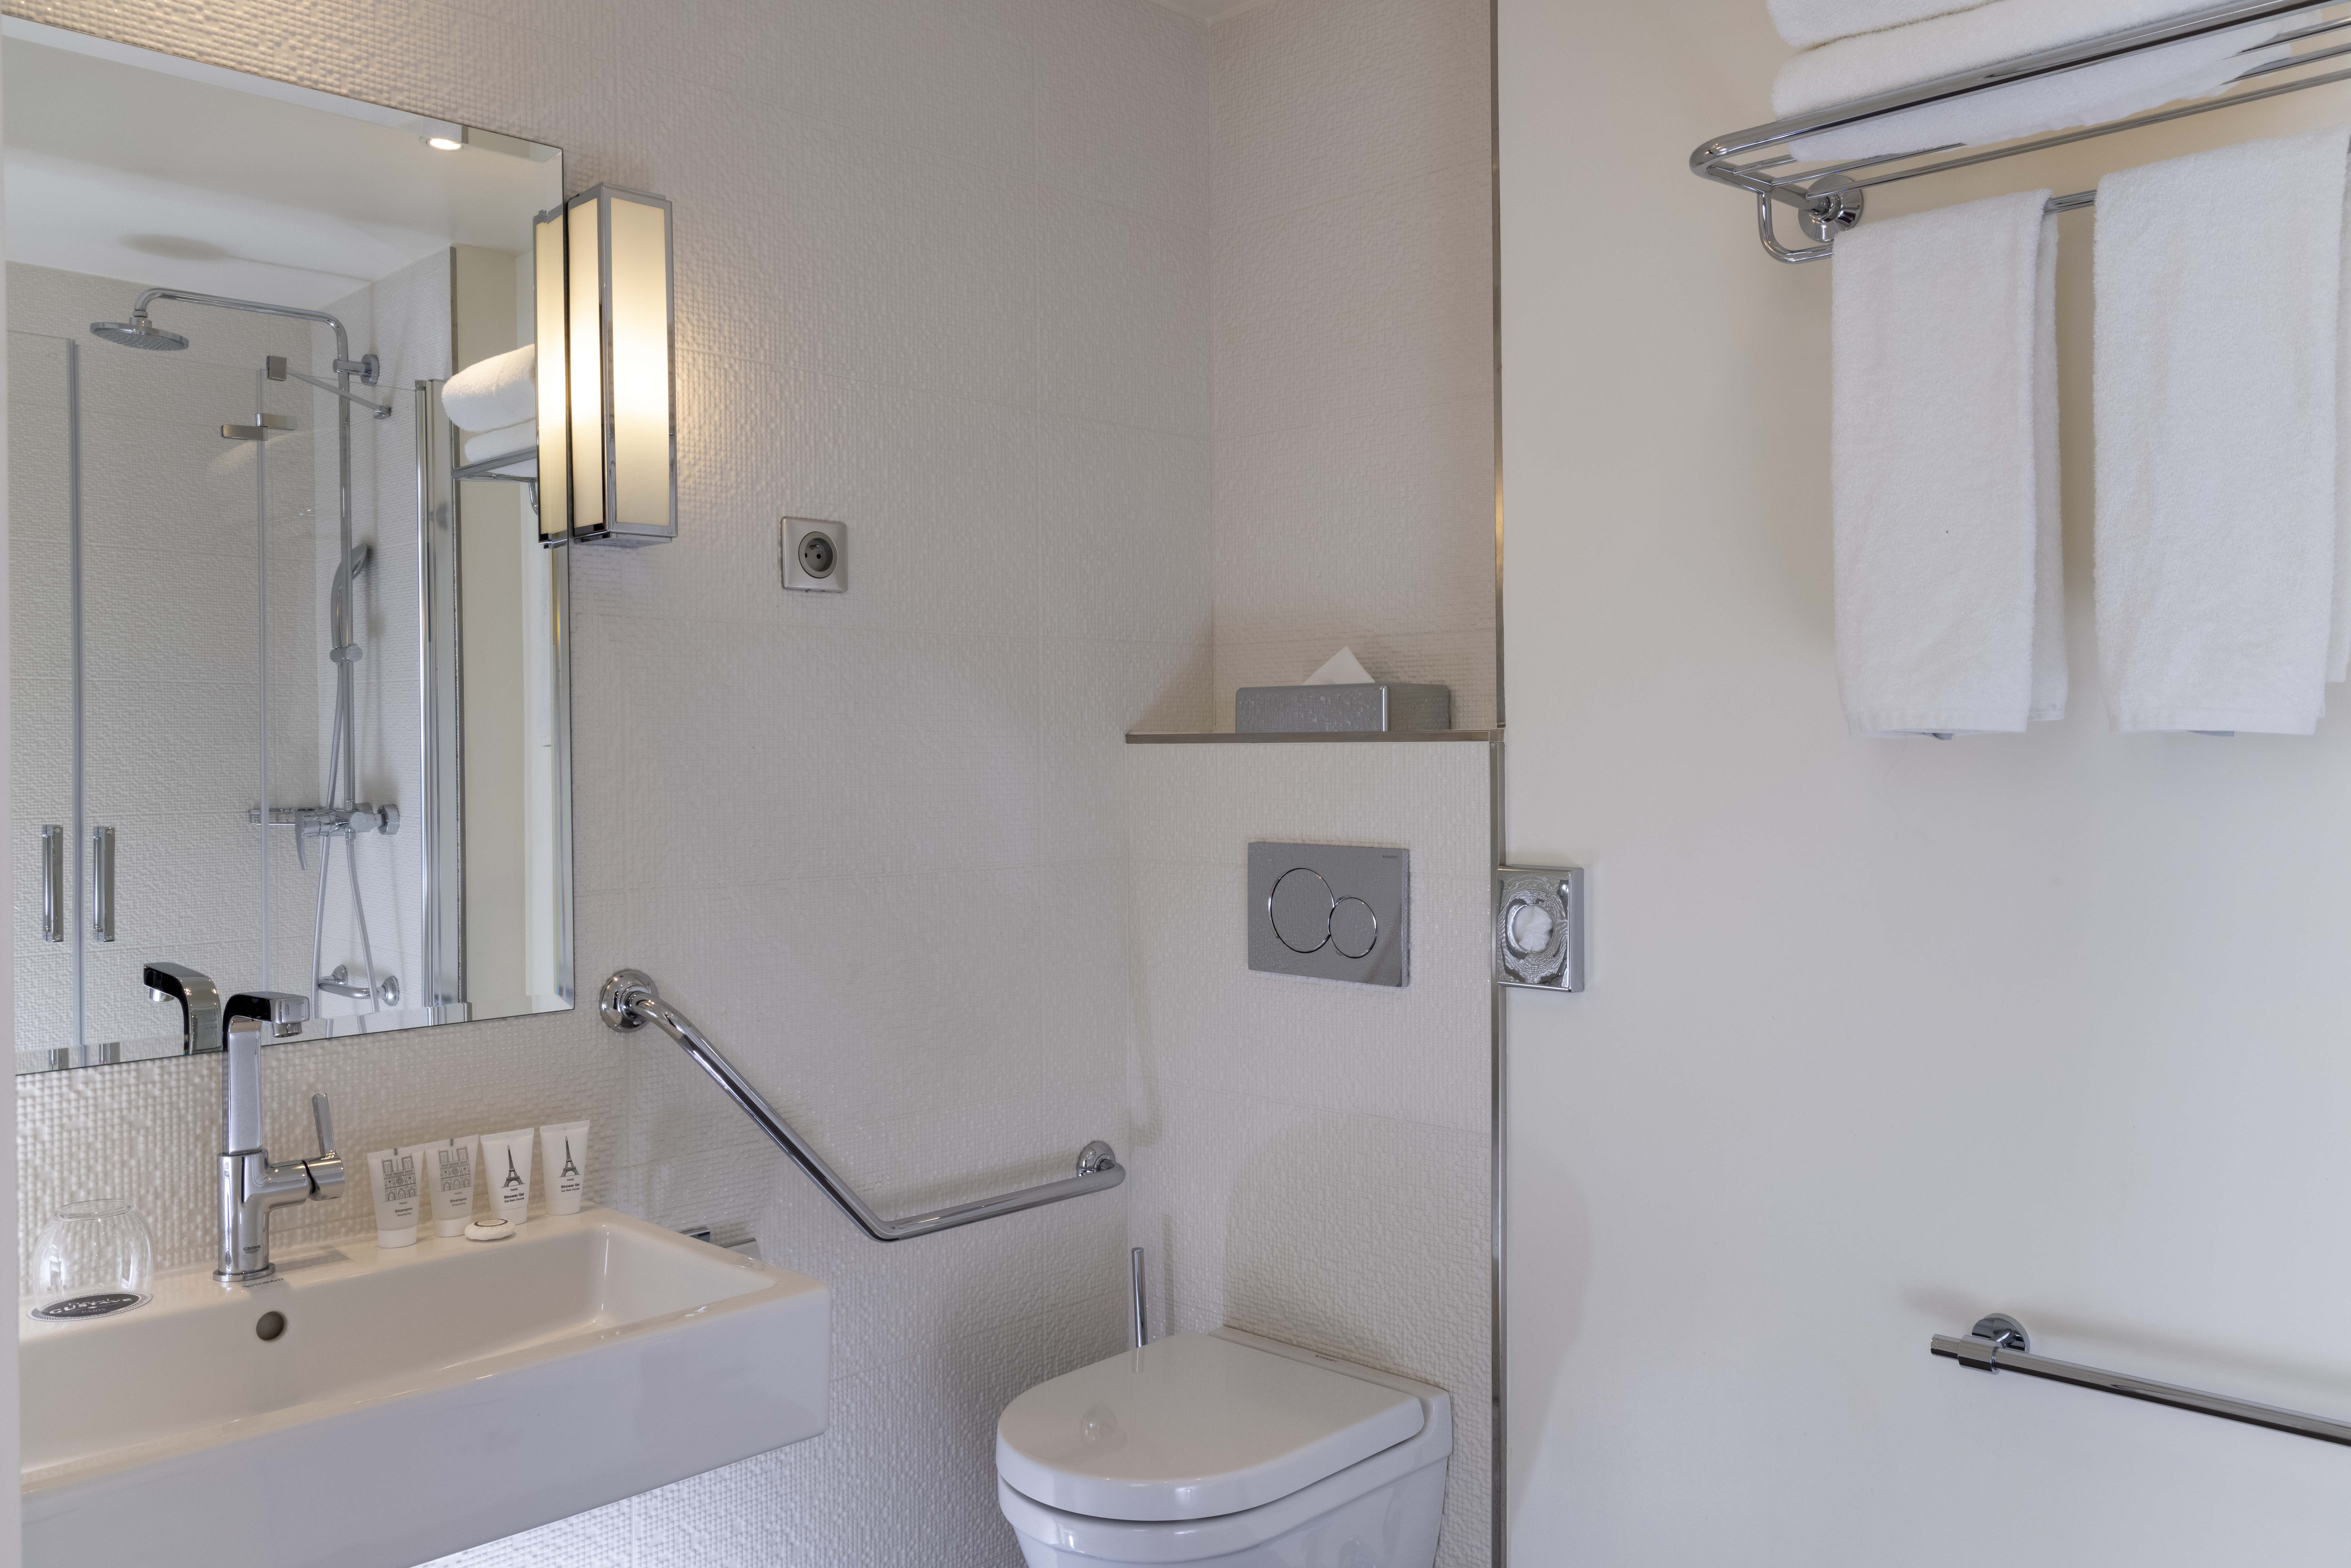 723/Gustave/chambre_/PMR/_16A5980_hotel_gustave_bd.jpg